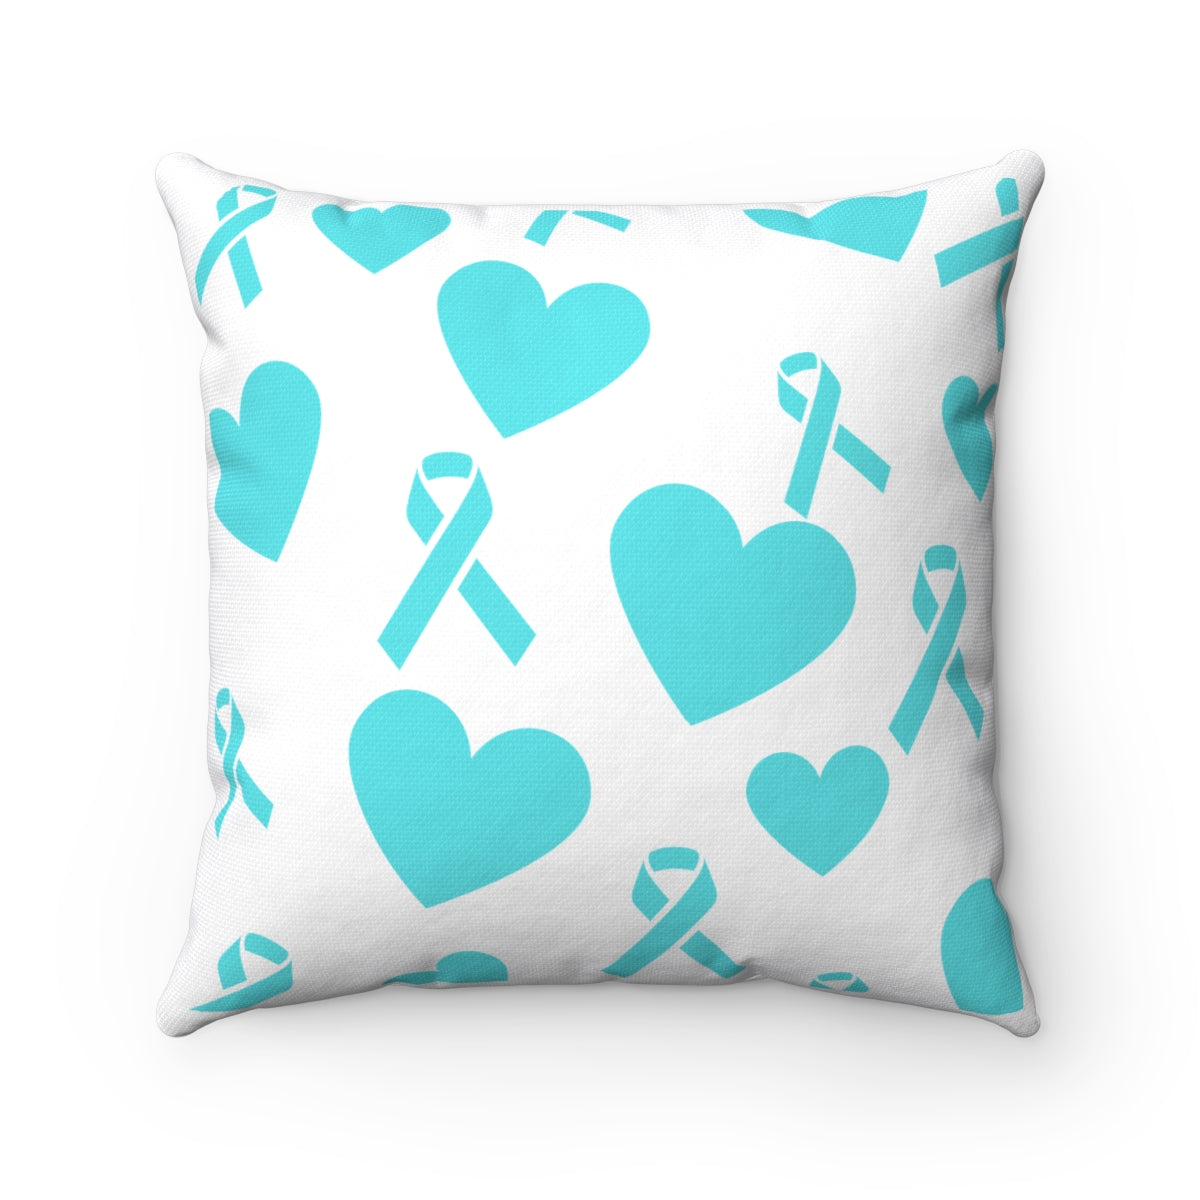 Ribbons & Hearts Square Pillow